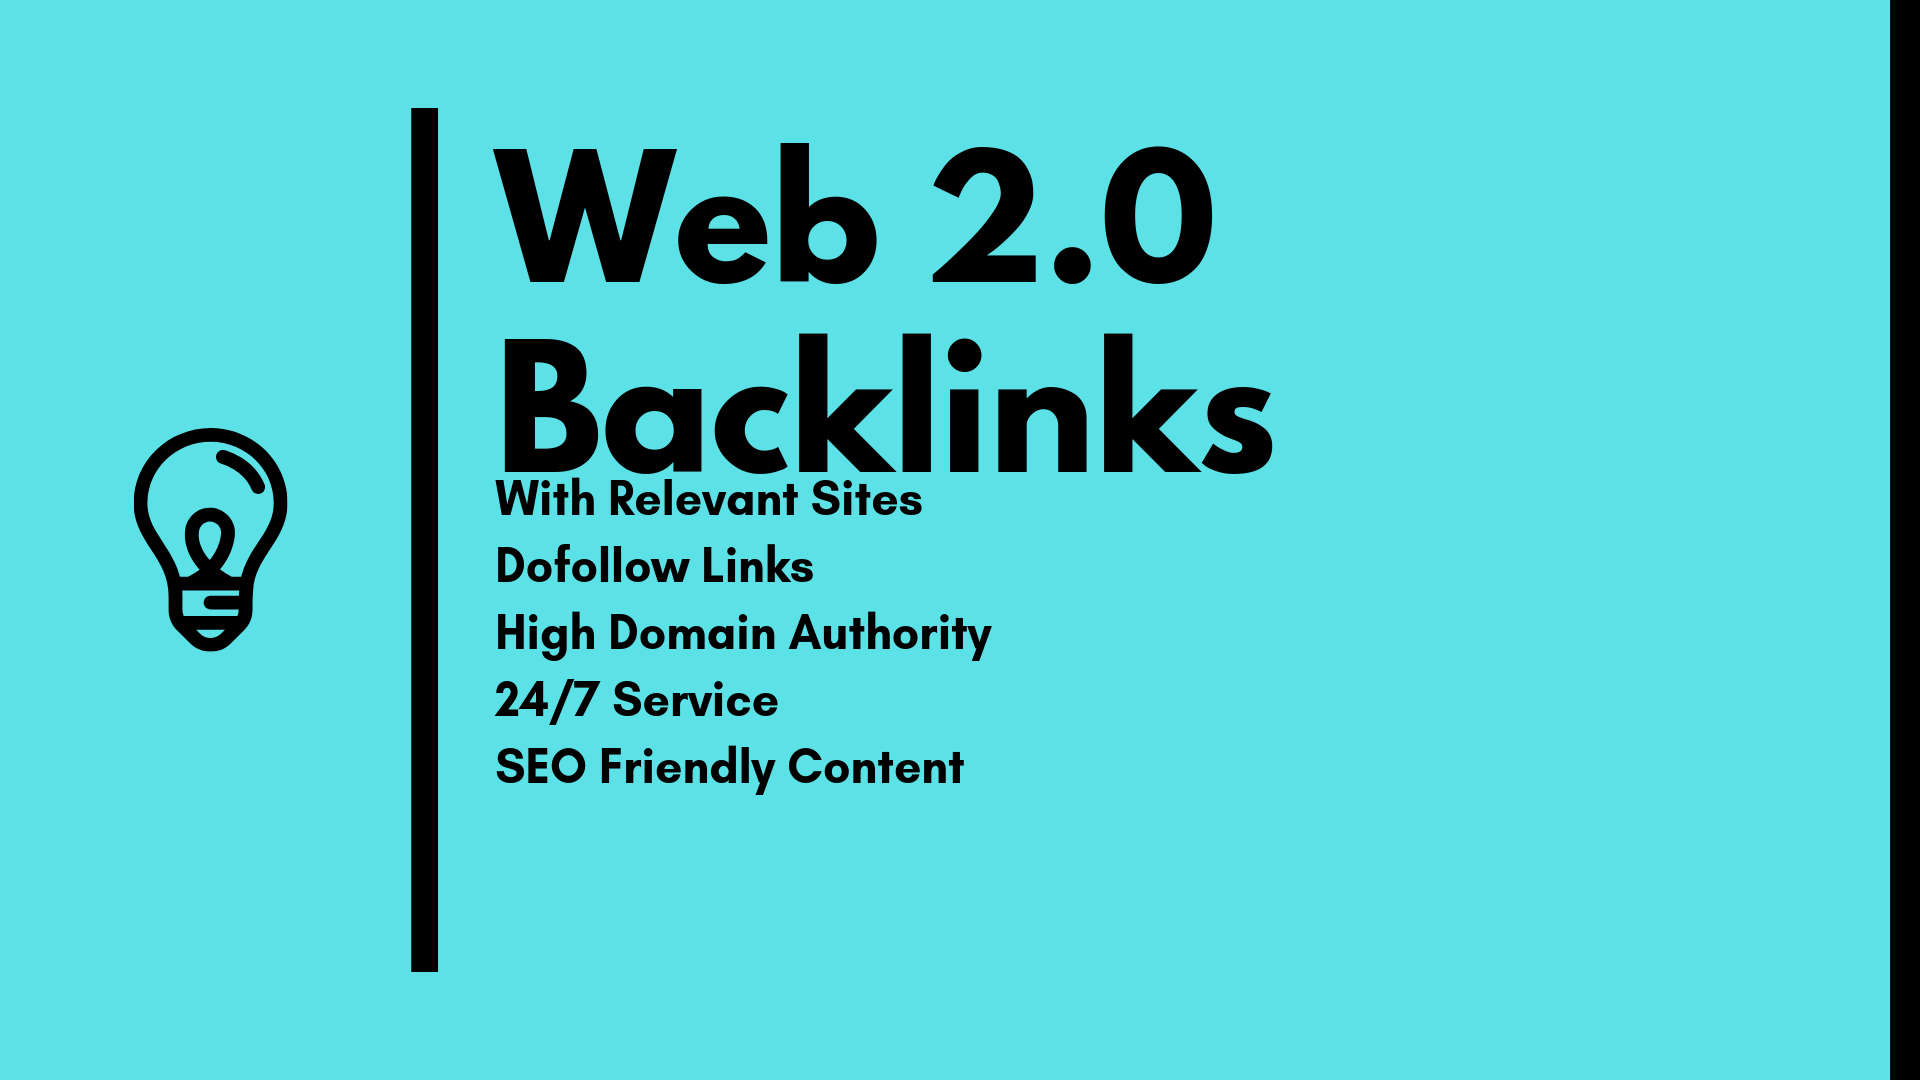 build 50 web 2.0 backlinks with DA 40+ sites in white hat method